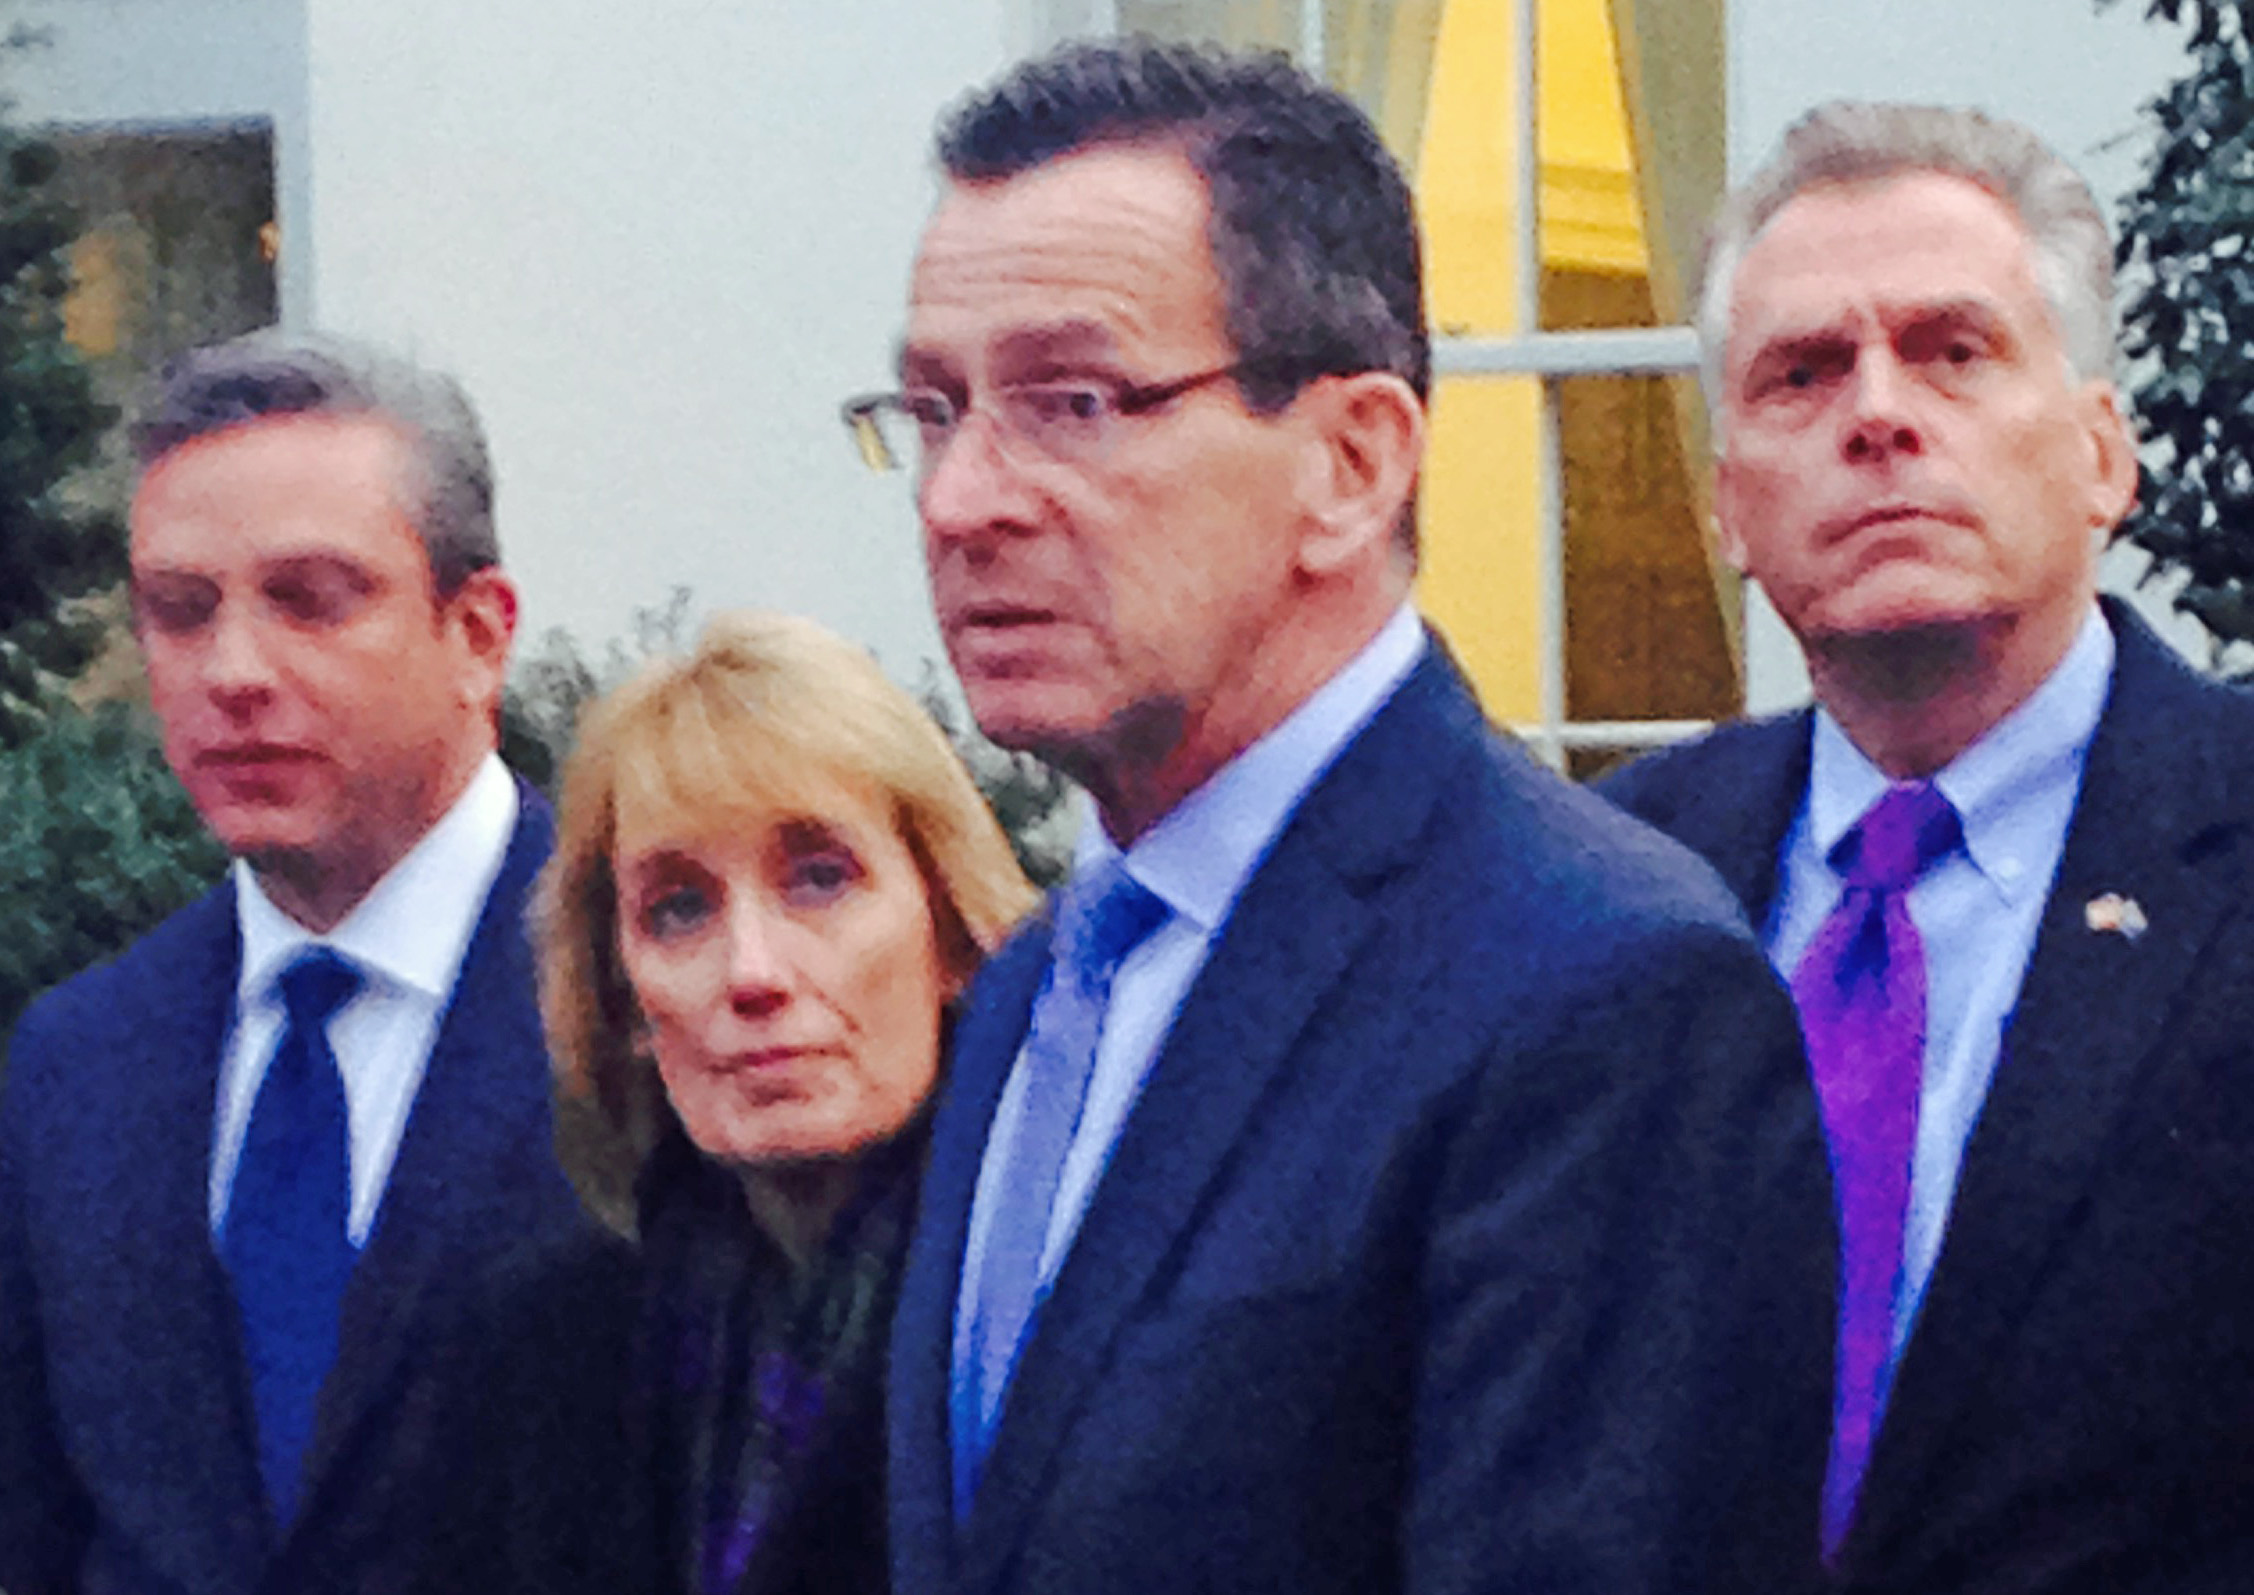 Malloy accuses GOP senators of 'terrible lies'